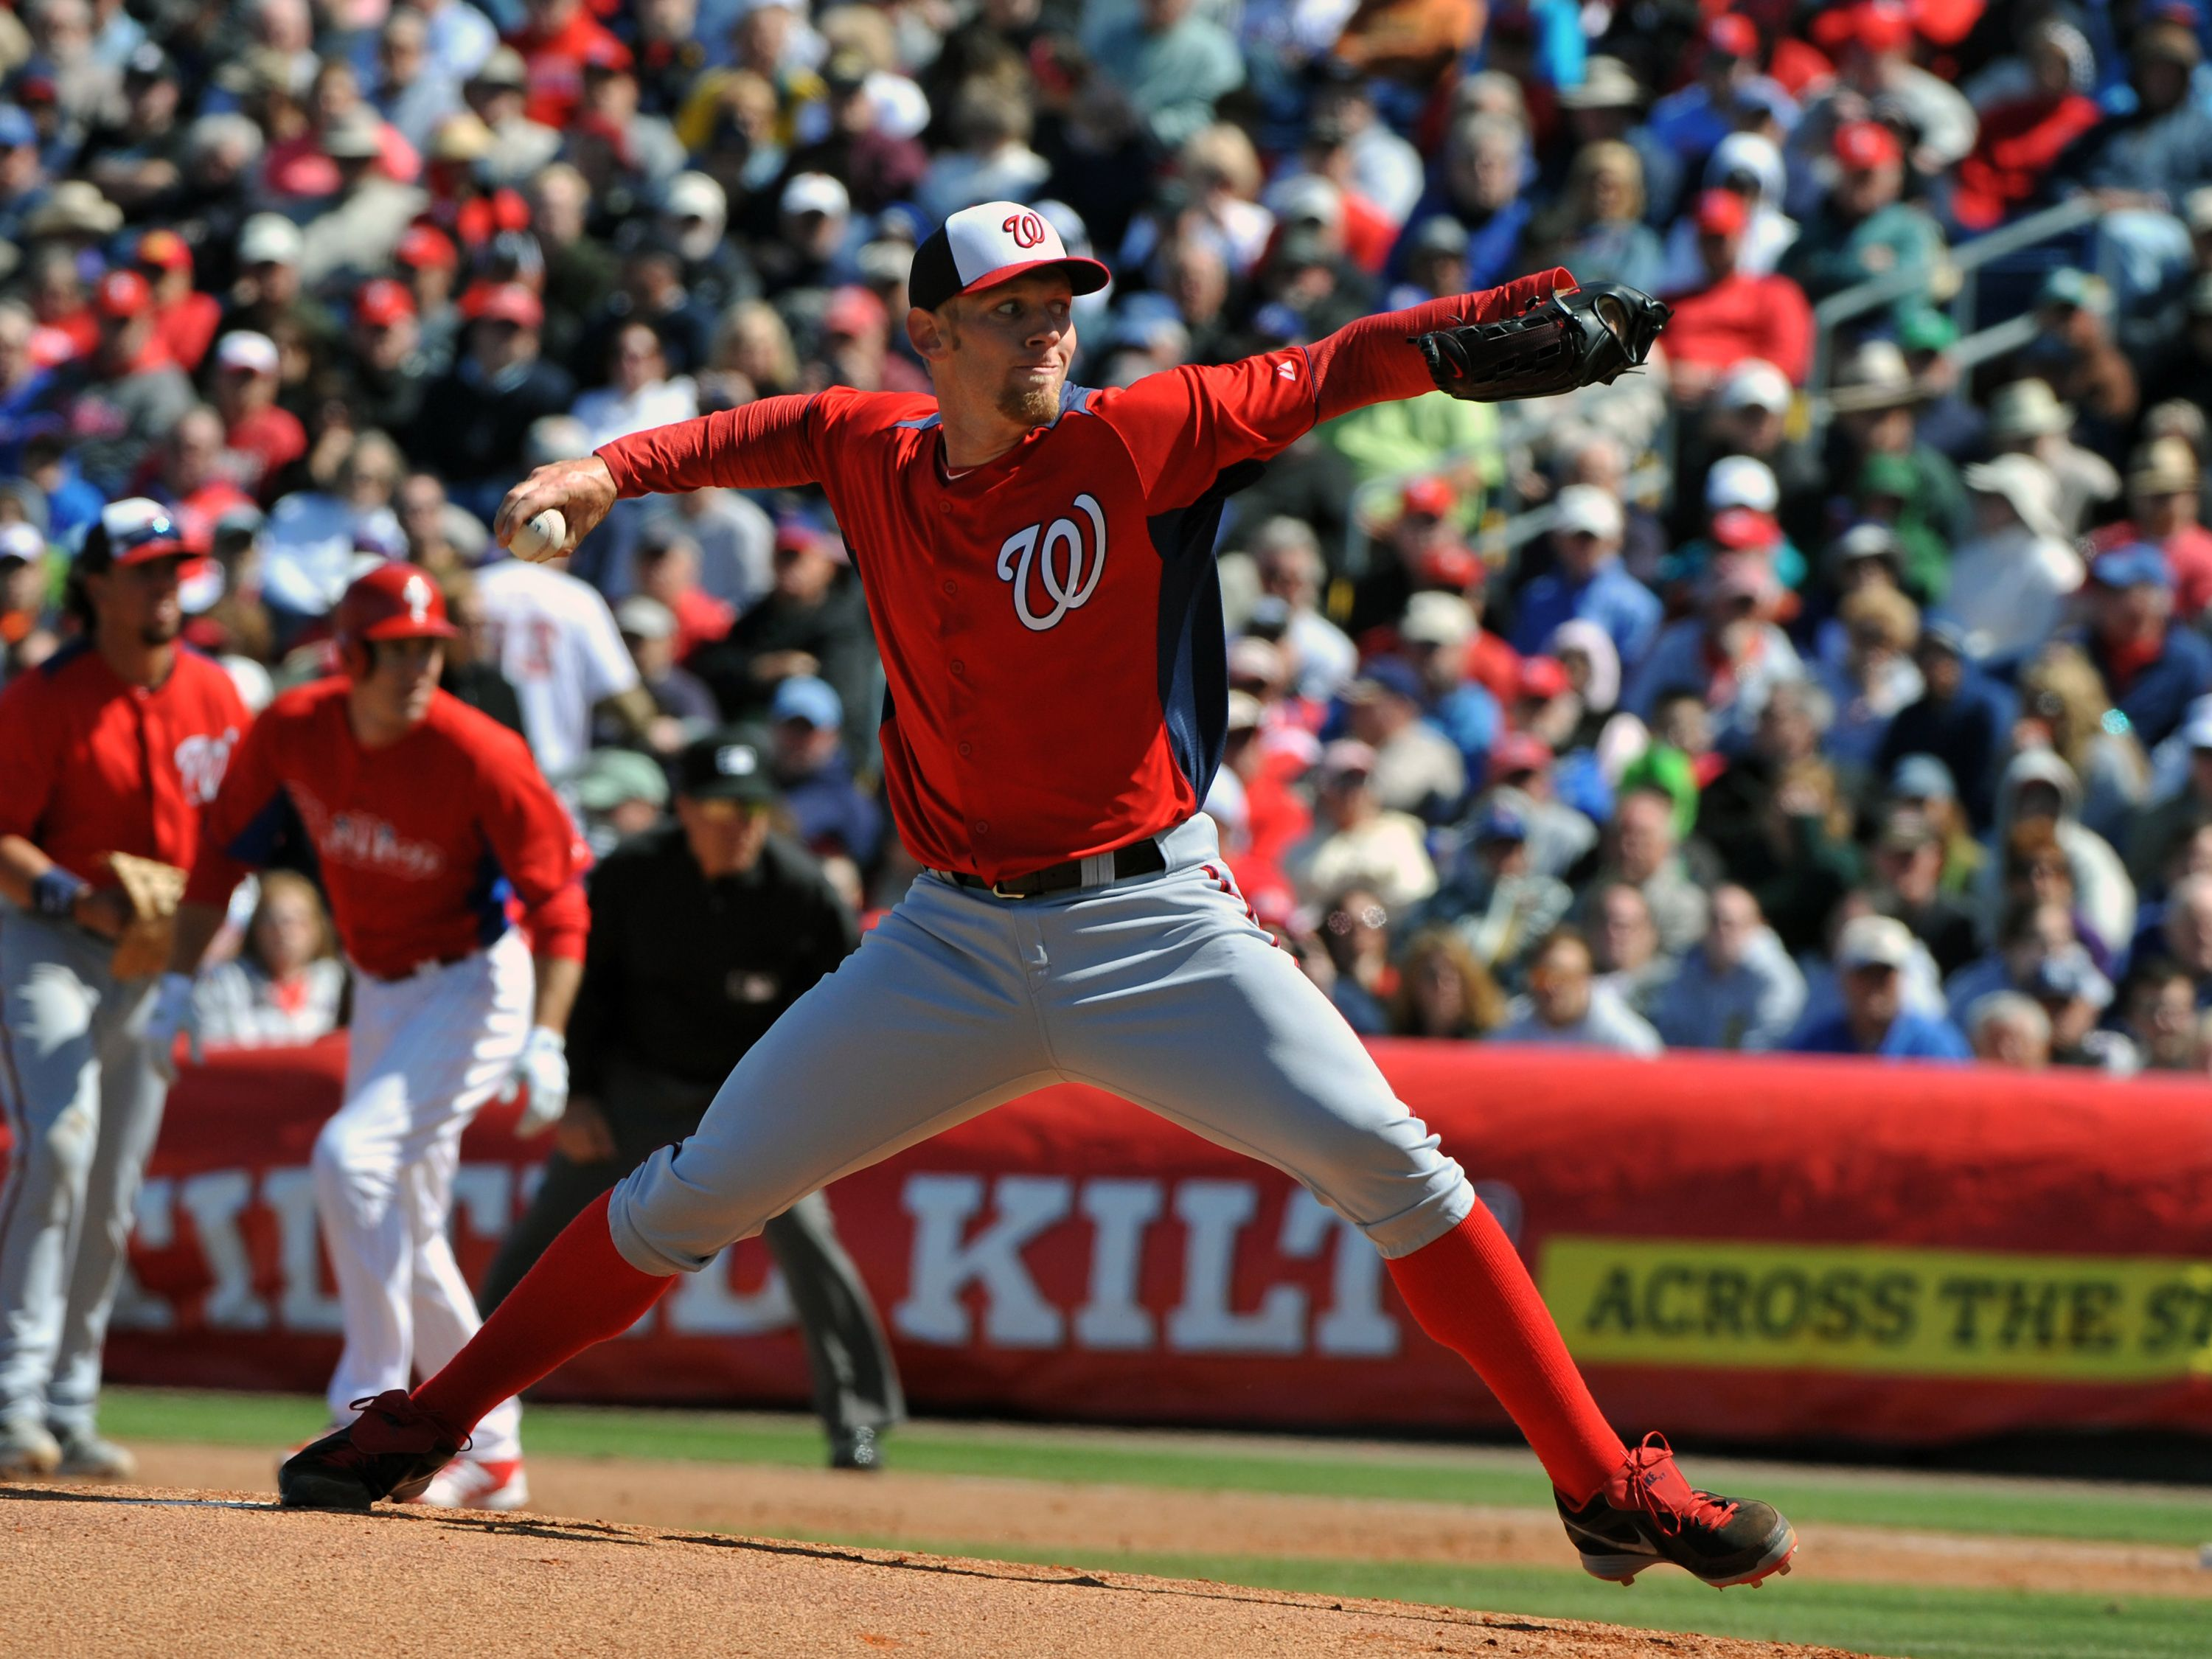 Nats & O's Spring Training Analysis Comparing the Beltway